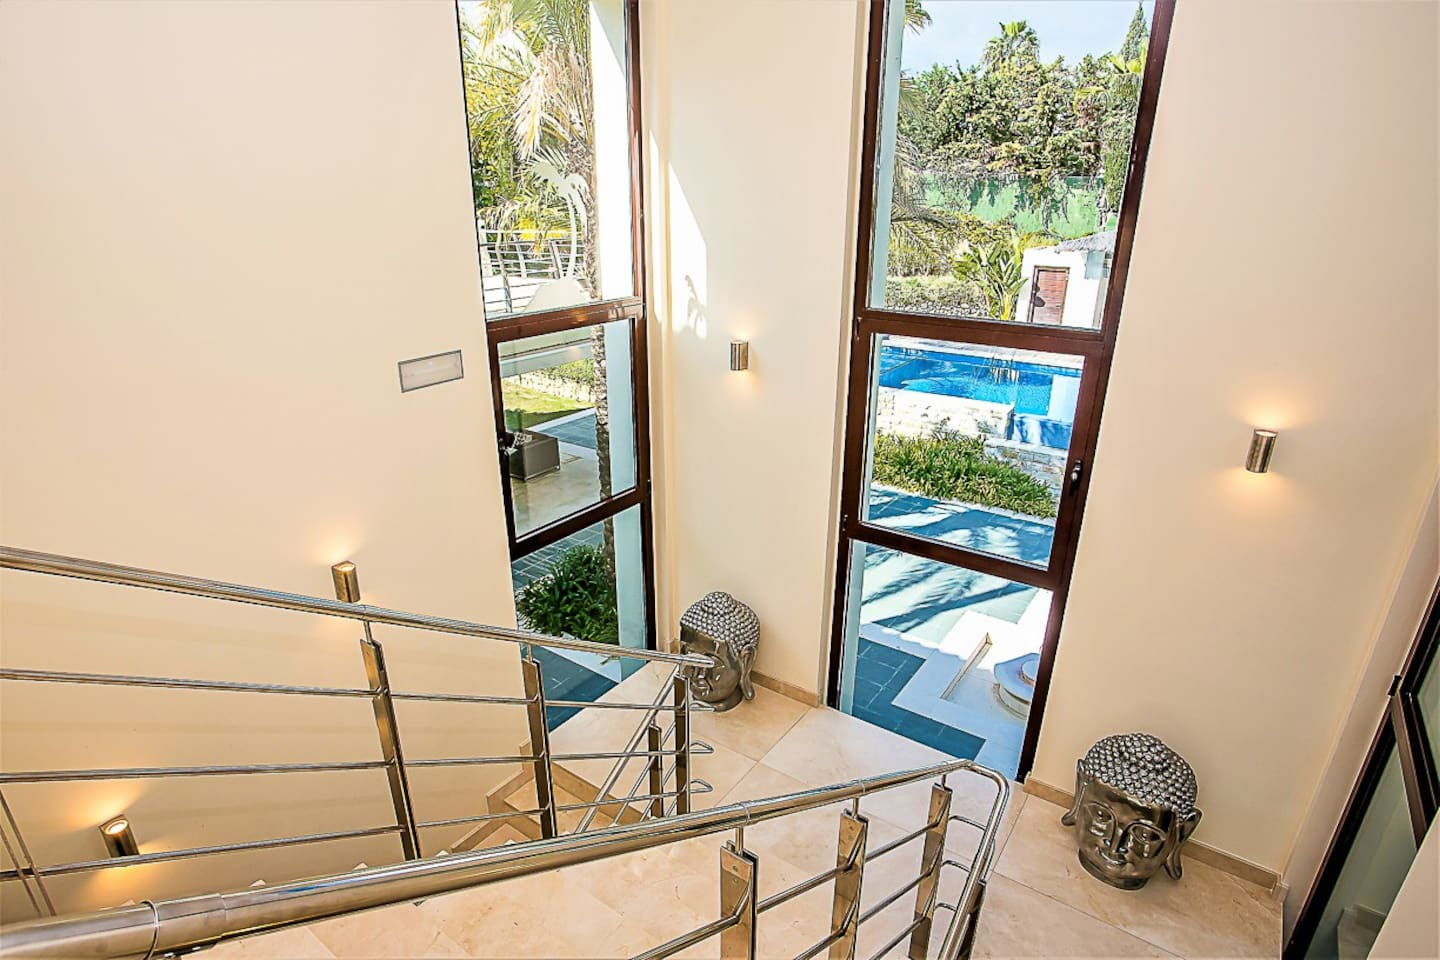 Apartment Luxurious villa in Puerto Banus - 10 min to Marina photo 25639430